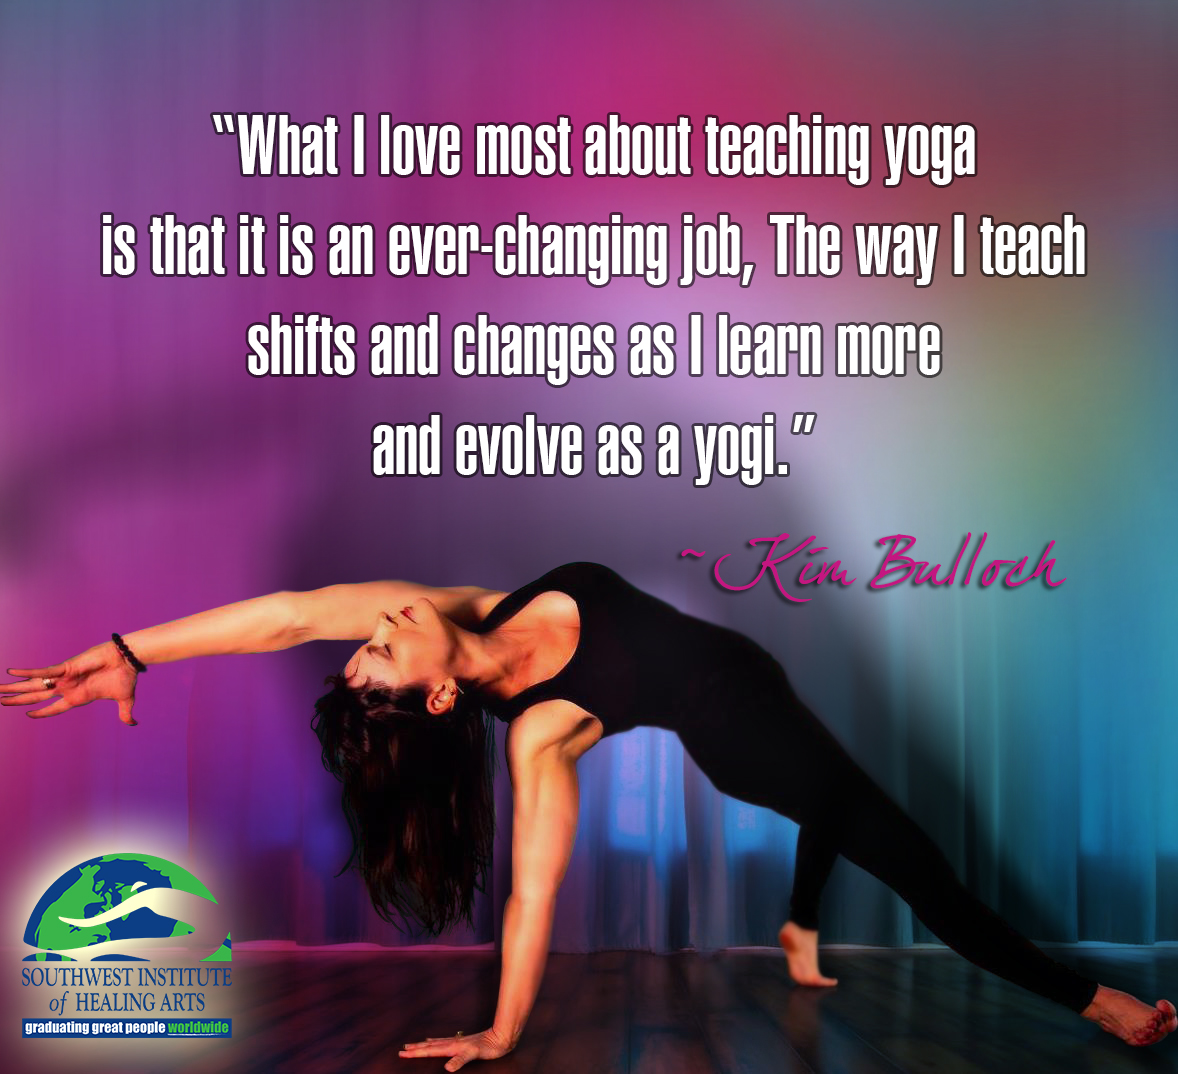 Benefits of Yoga - Southwest Institute of Healing Arts - Kim Bulloch